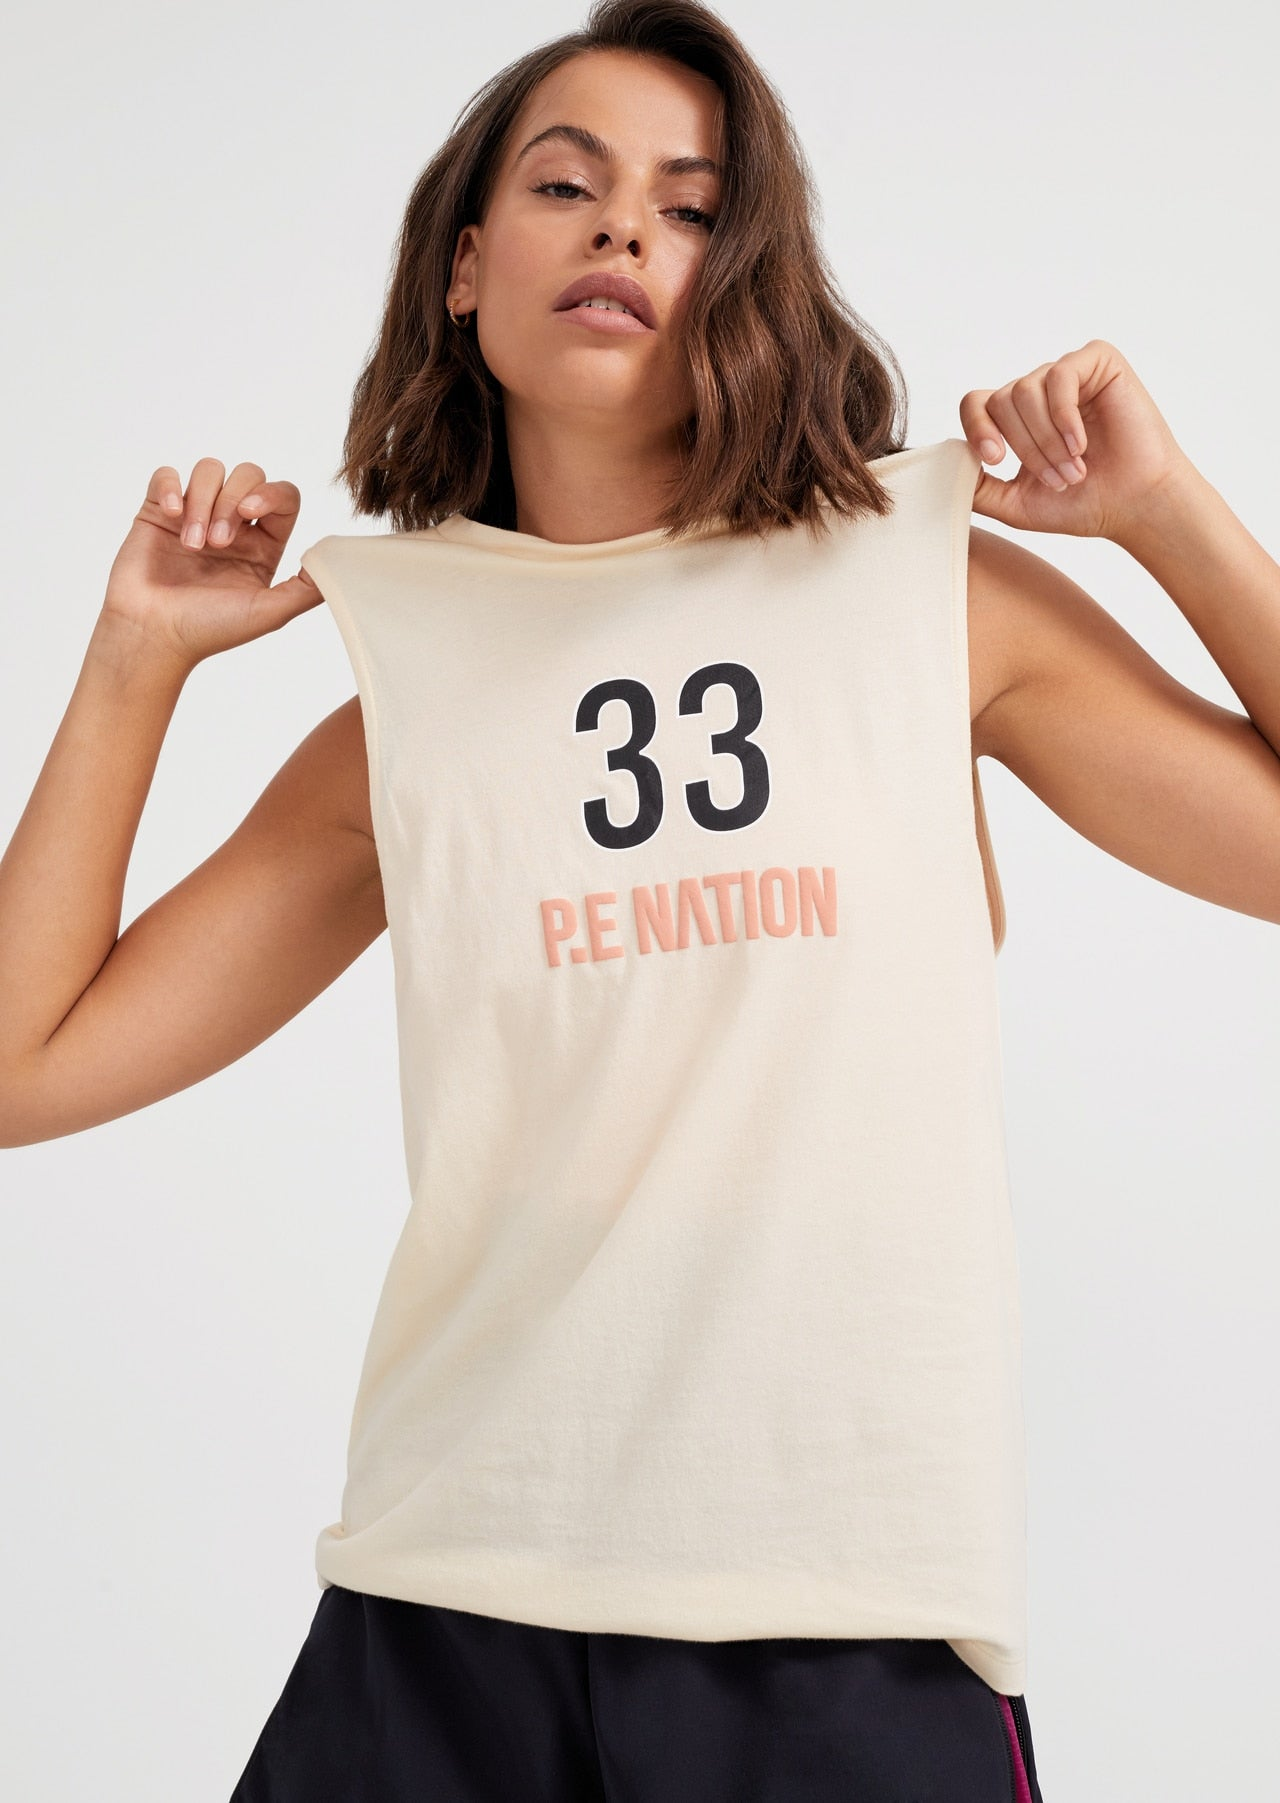 PE Nation | Triple Double Tank - Ivory